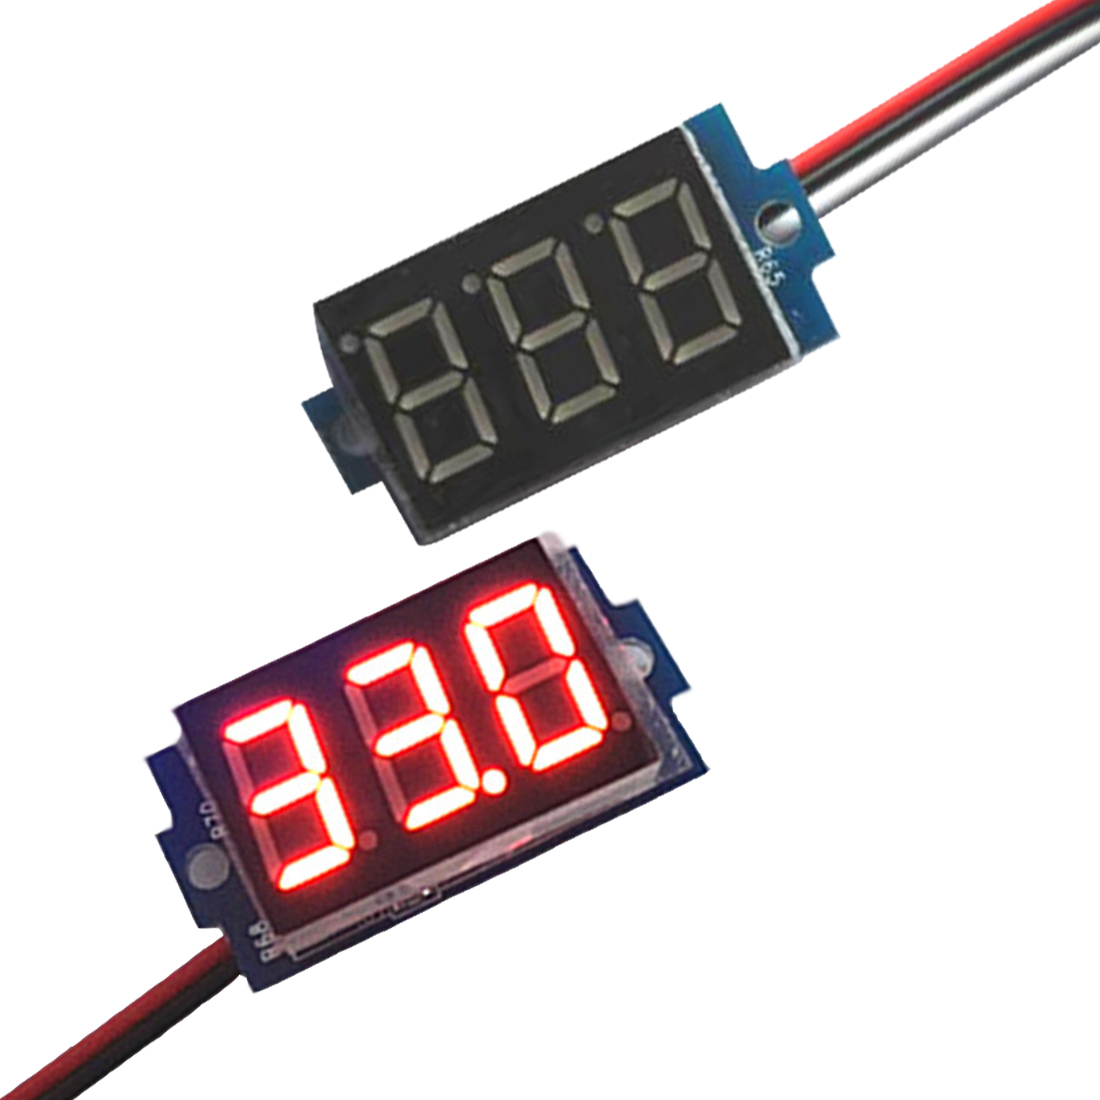 Red LED Display Mini 0.36 inch DC 0-100V Digital Voltmeter 100V Volt Panel Indicator Monitor Voltage Meter sannen 7l double decker cooler lunch bags insulated solid thermal lunchbox food picnic bag cooler tote handbags for men women